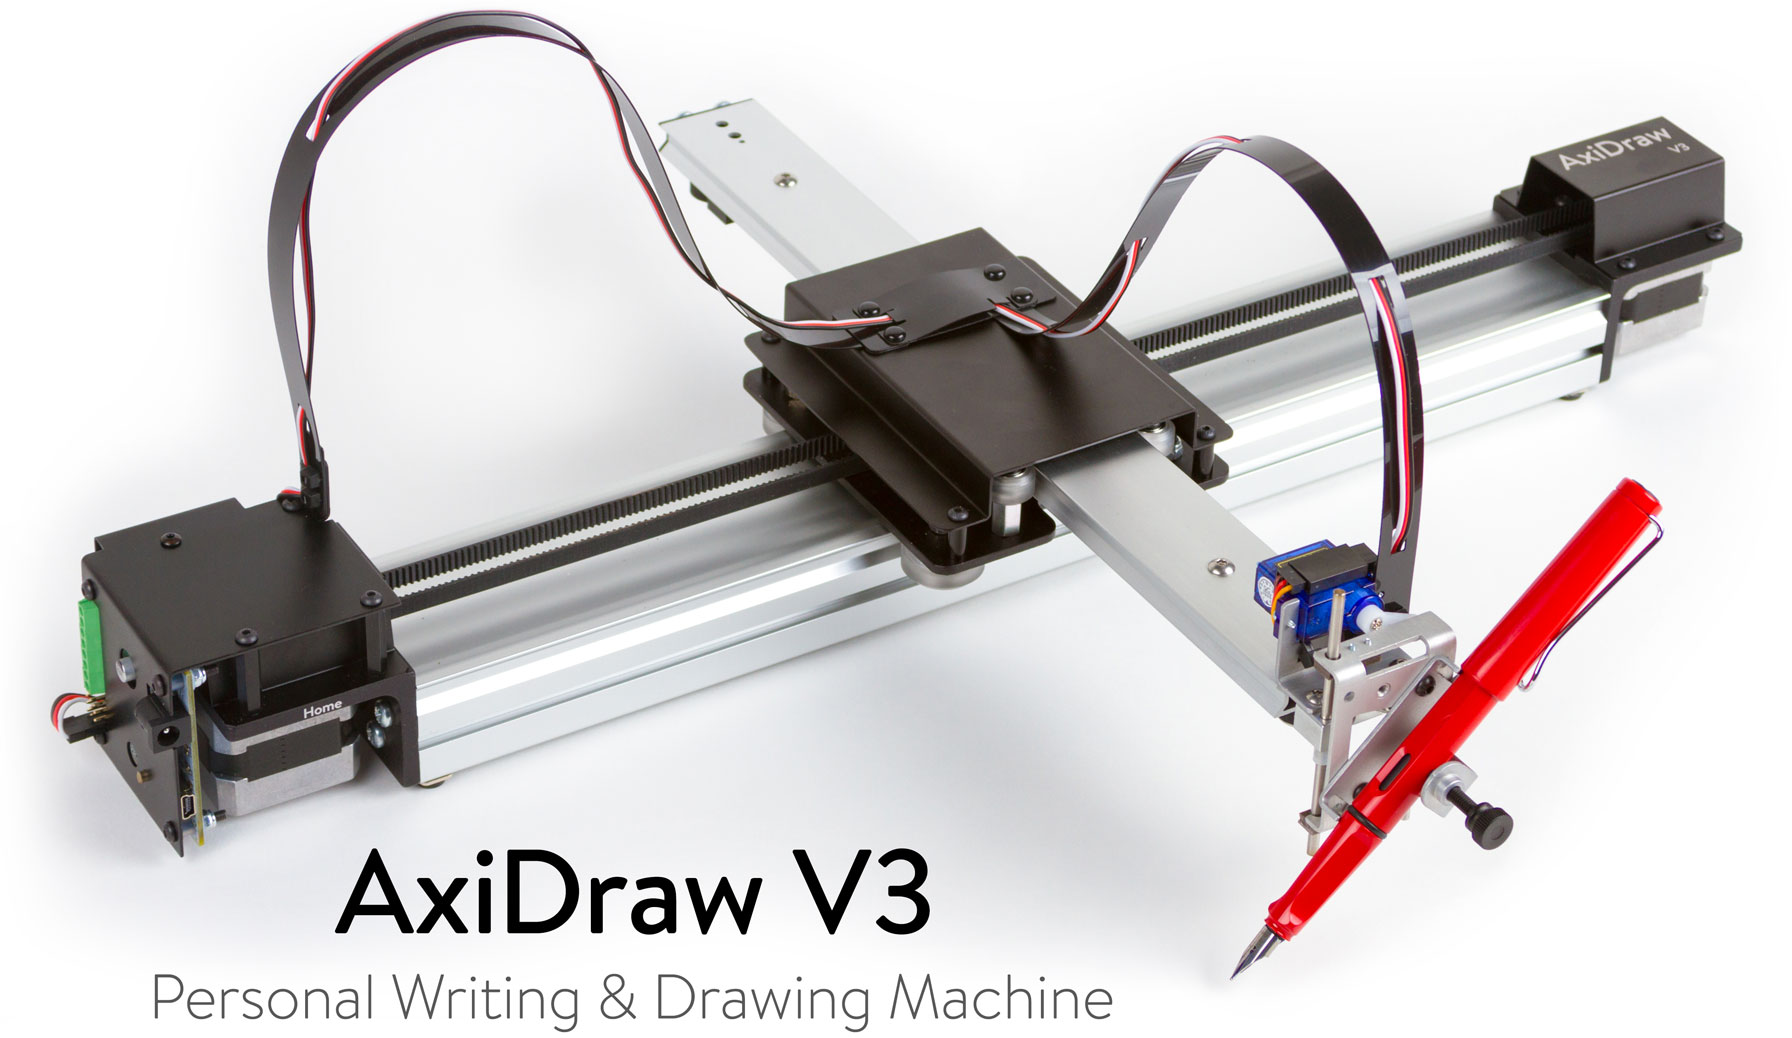 The AxiDraw V3 Drawing Machine